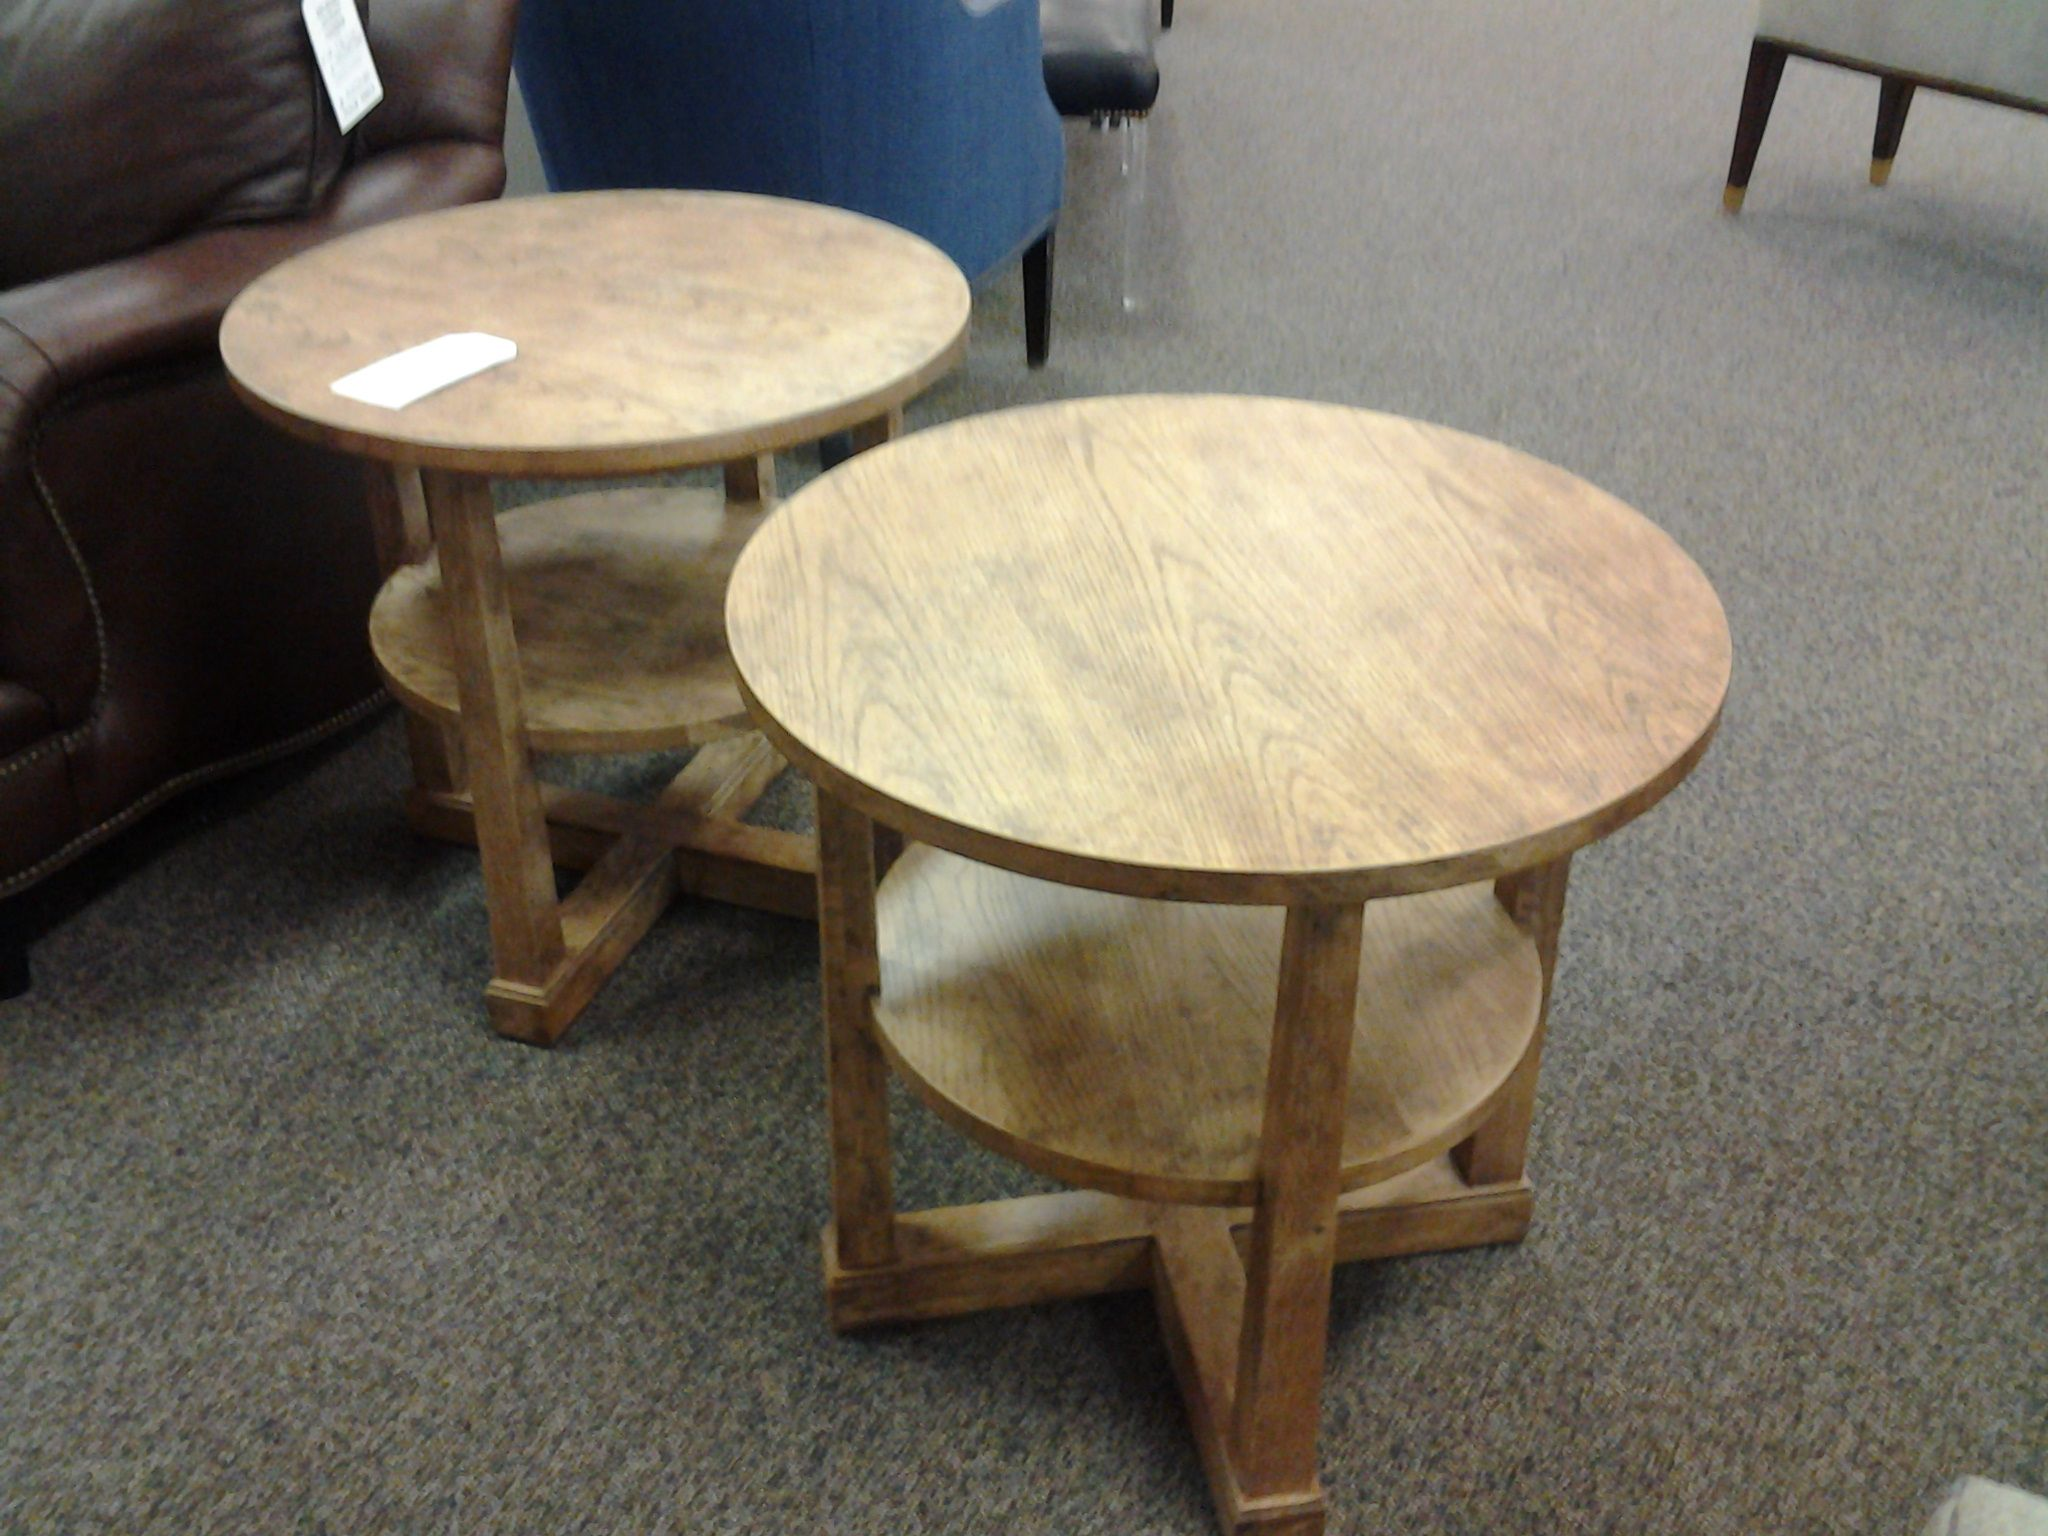 Pair of chair side tables by Century Furniture